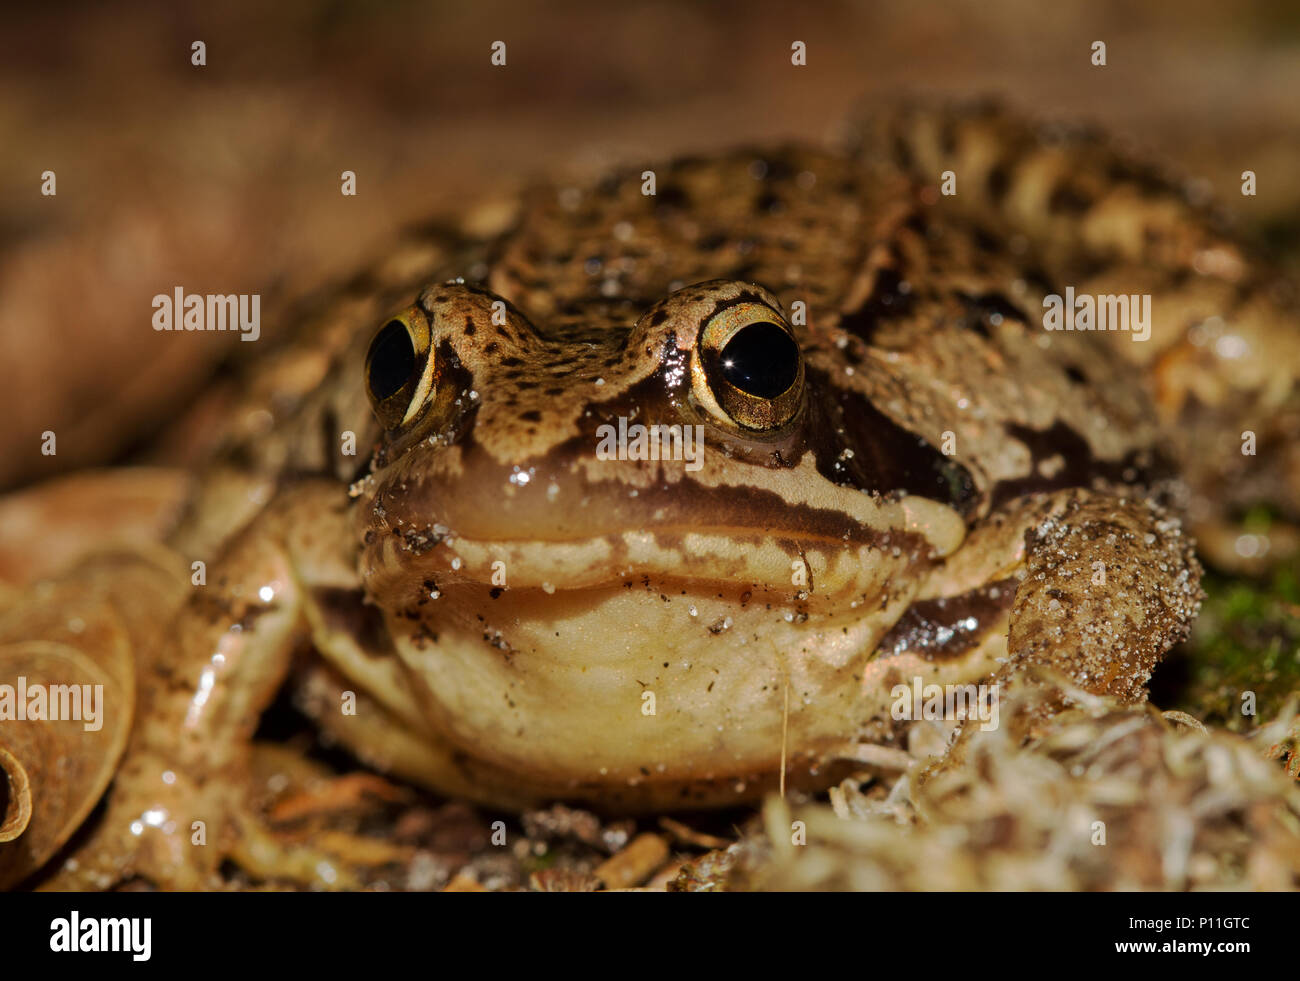 Close-up of a Moor frog, Rana arvalis - Stock Image